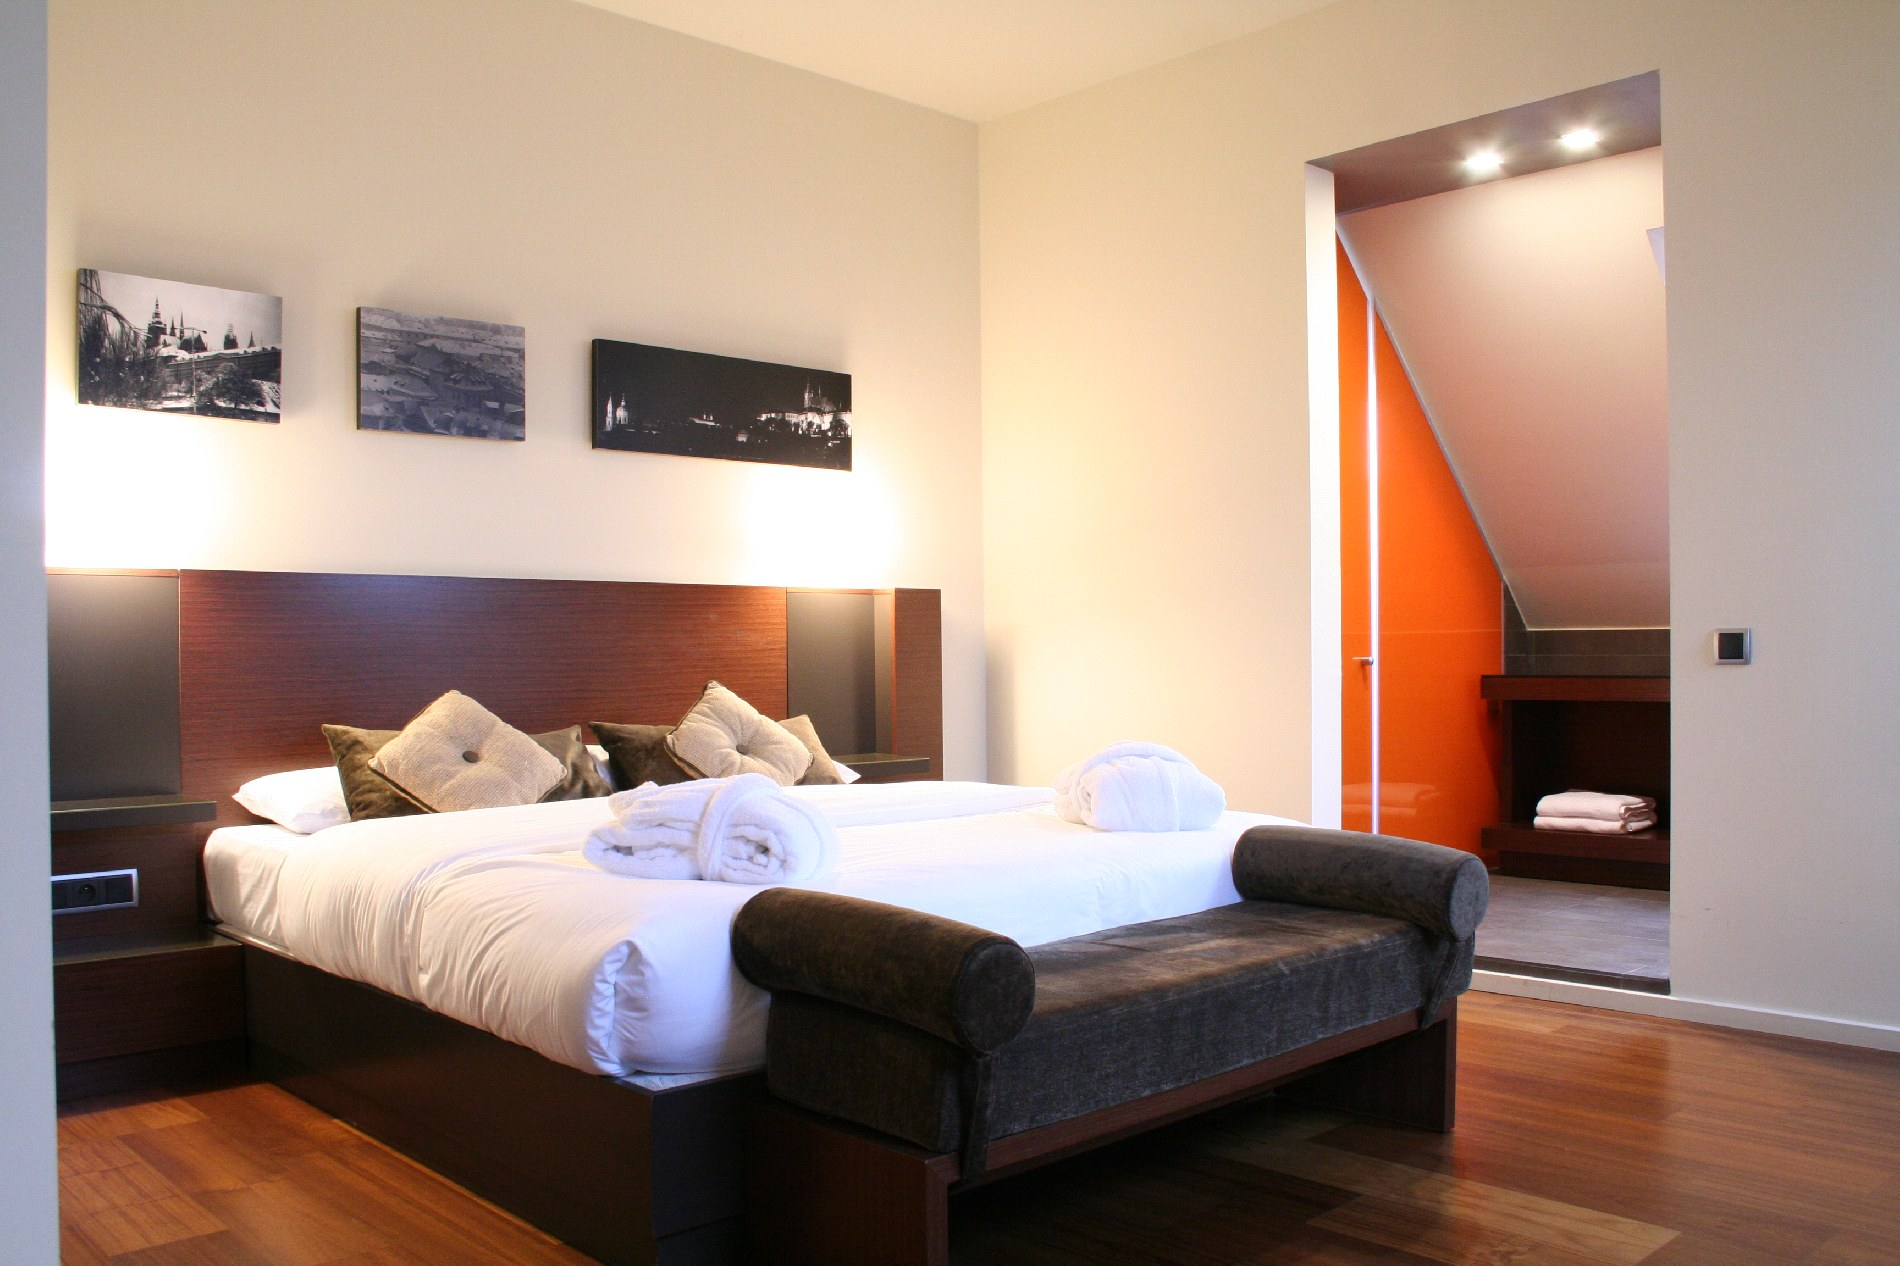 987 design prague hotel hotel near wenceslas square for Modern hotel prague